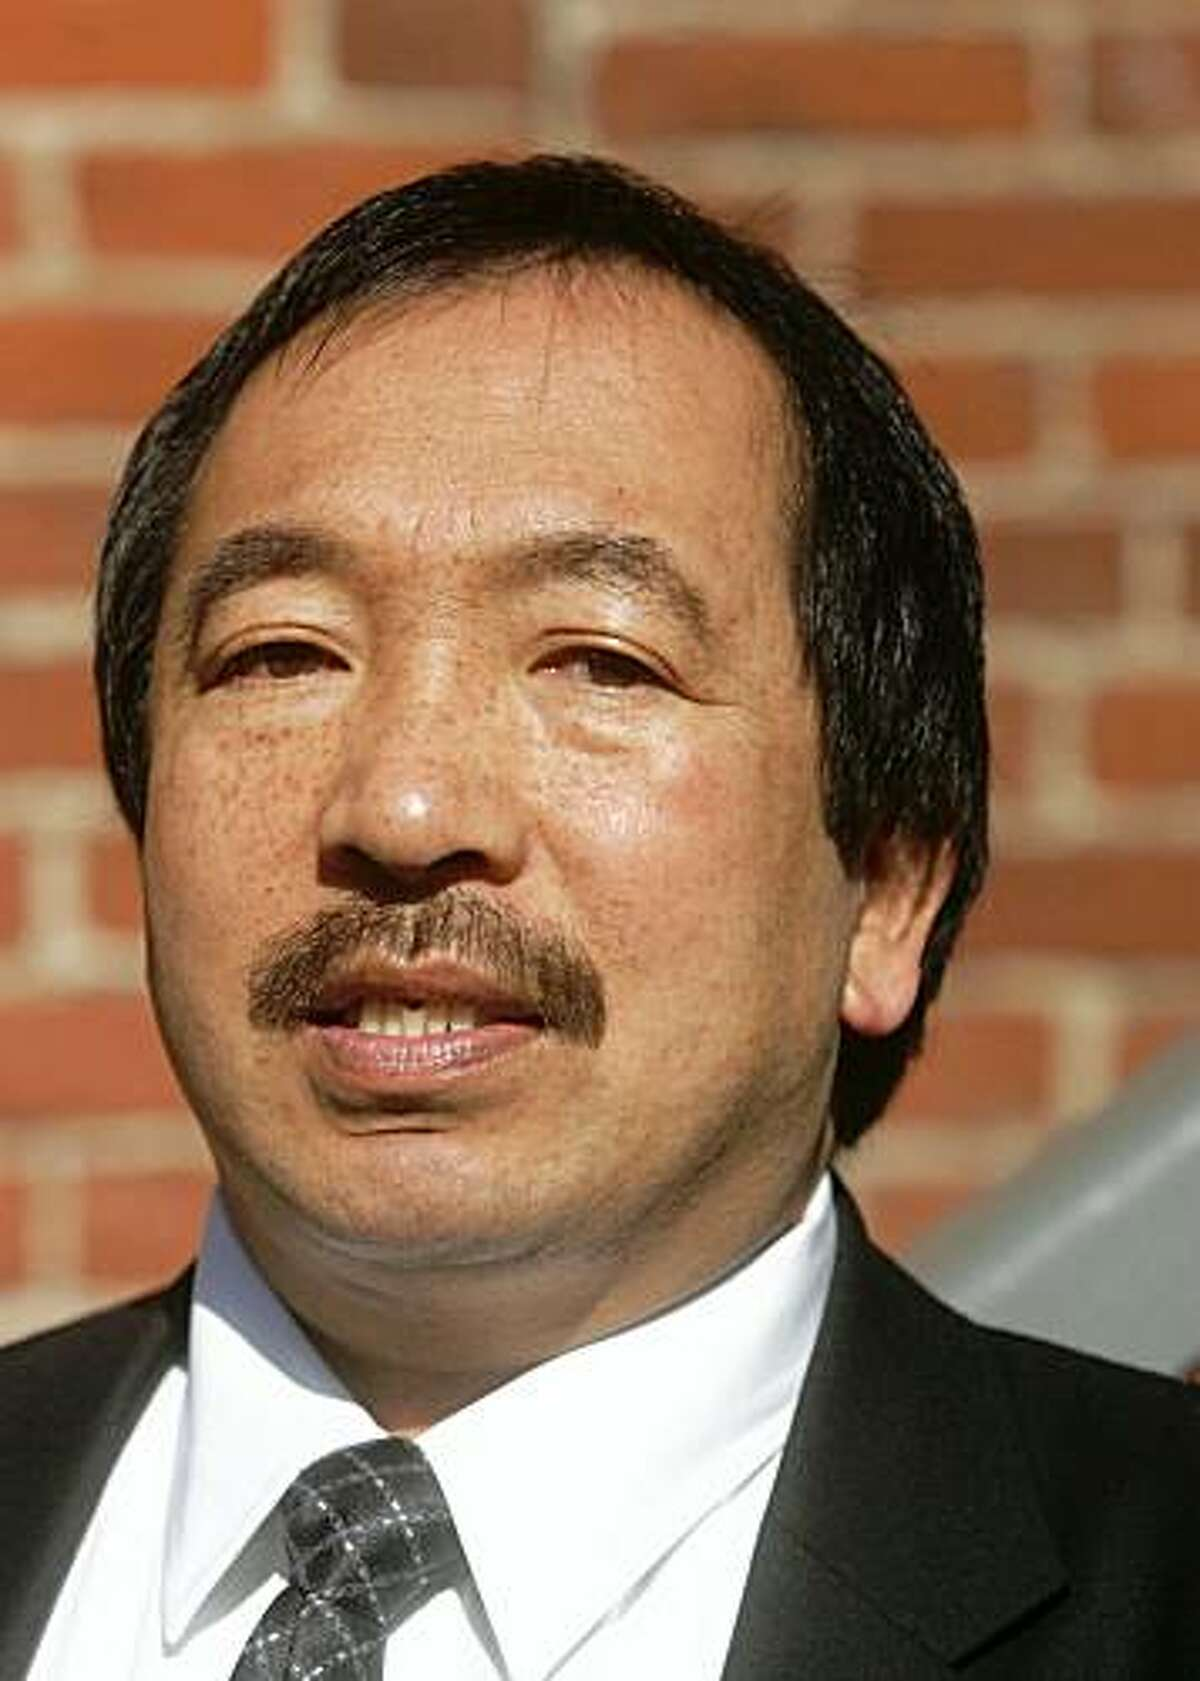 Irwin Lum, president of the workers union Local 250A.